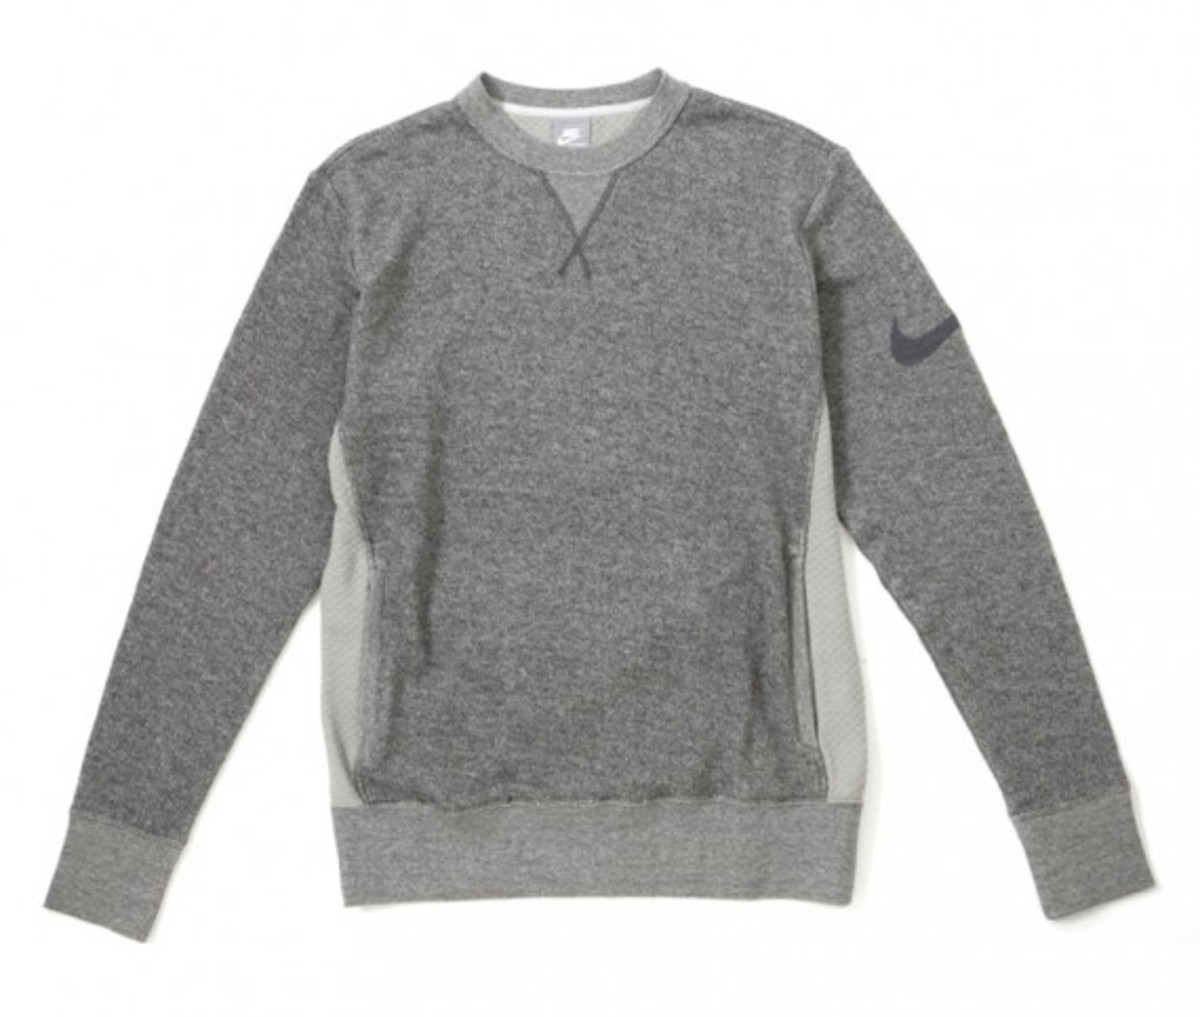 nike-sportswear-grey-navy-collection-13